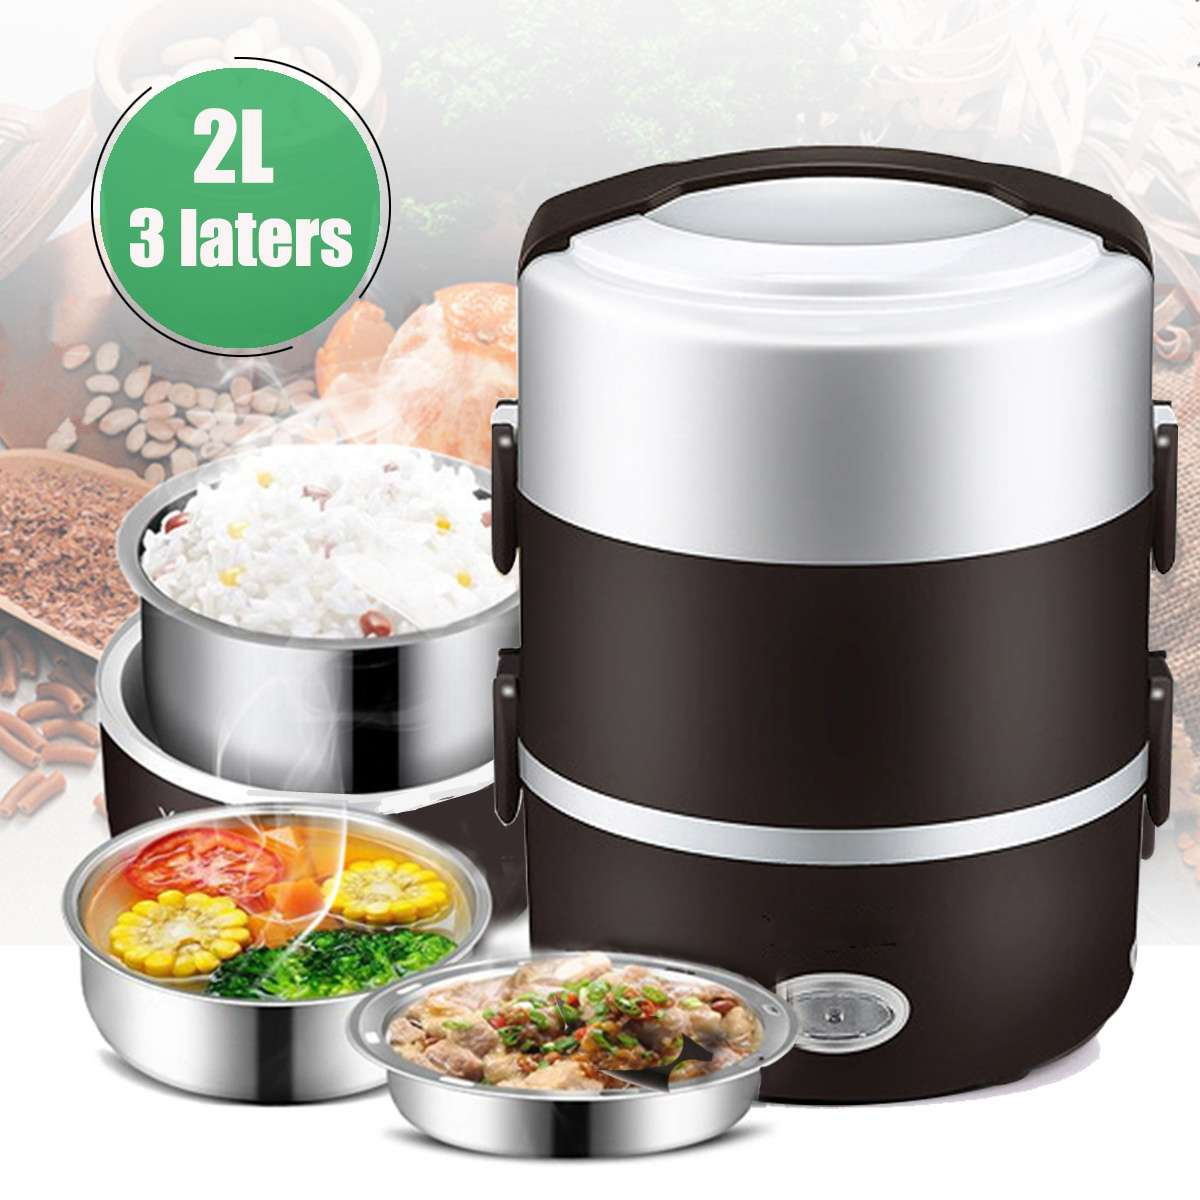 2L 3 Layer Portable Lunch Box Mini Electric Rice Cooker Steamer Meal Thermal Heating Automatic Food Container Warmer Cooking Pot bear dfh s2516 electric box insulation heating lunch box cooking lunch boxes hot meal ceramic gall stainless steel